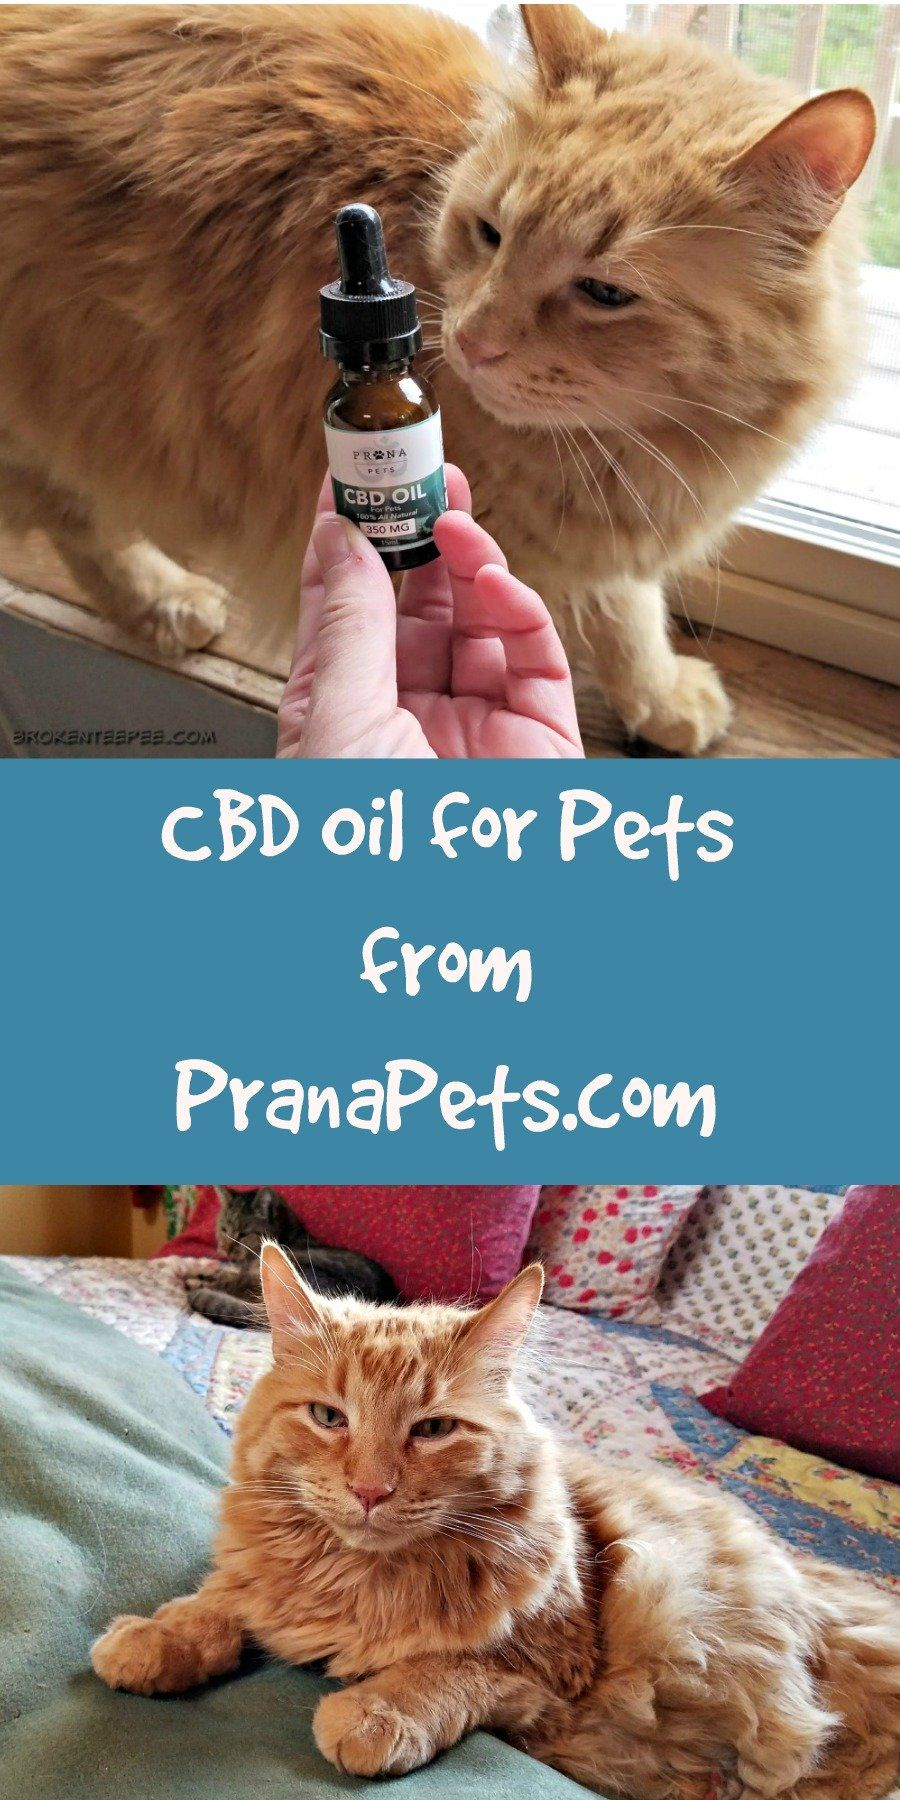 CBD Oil for Cats Did it Work for Sherpa the Farm Cat